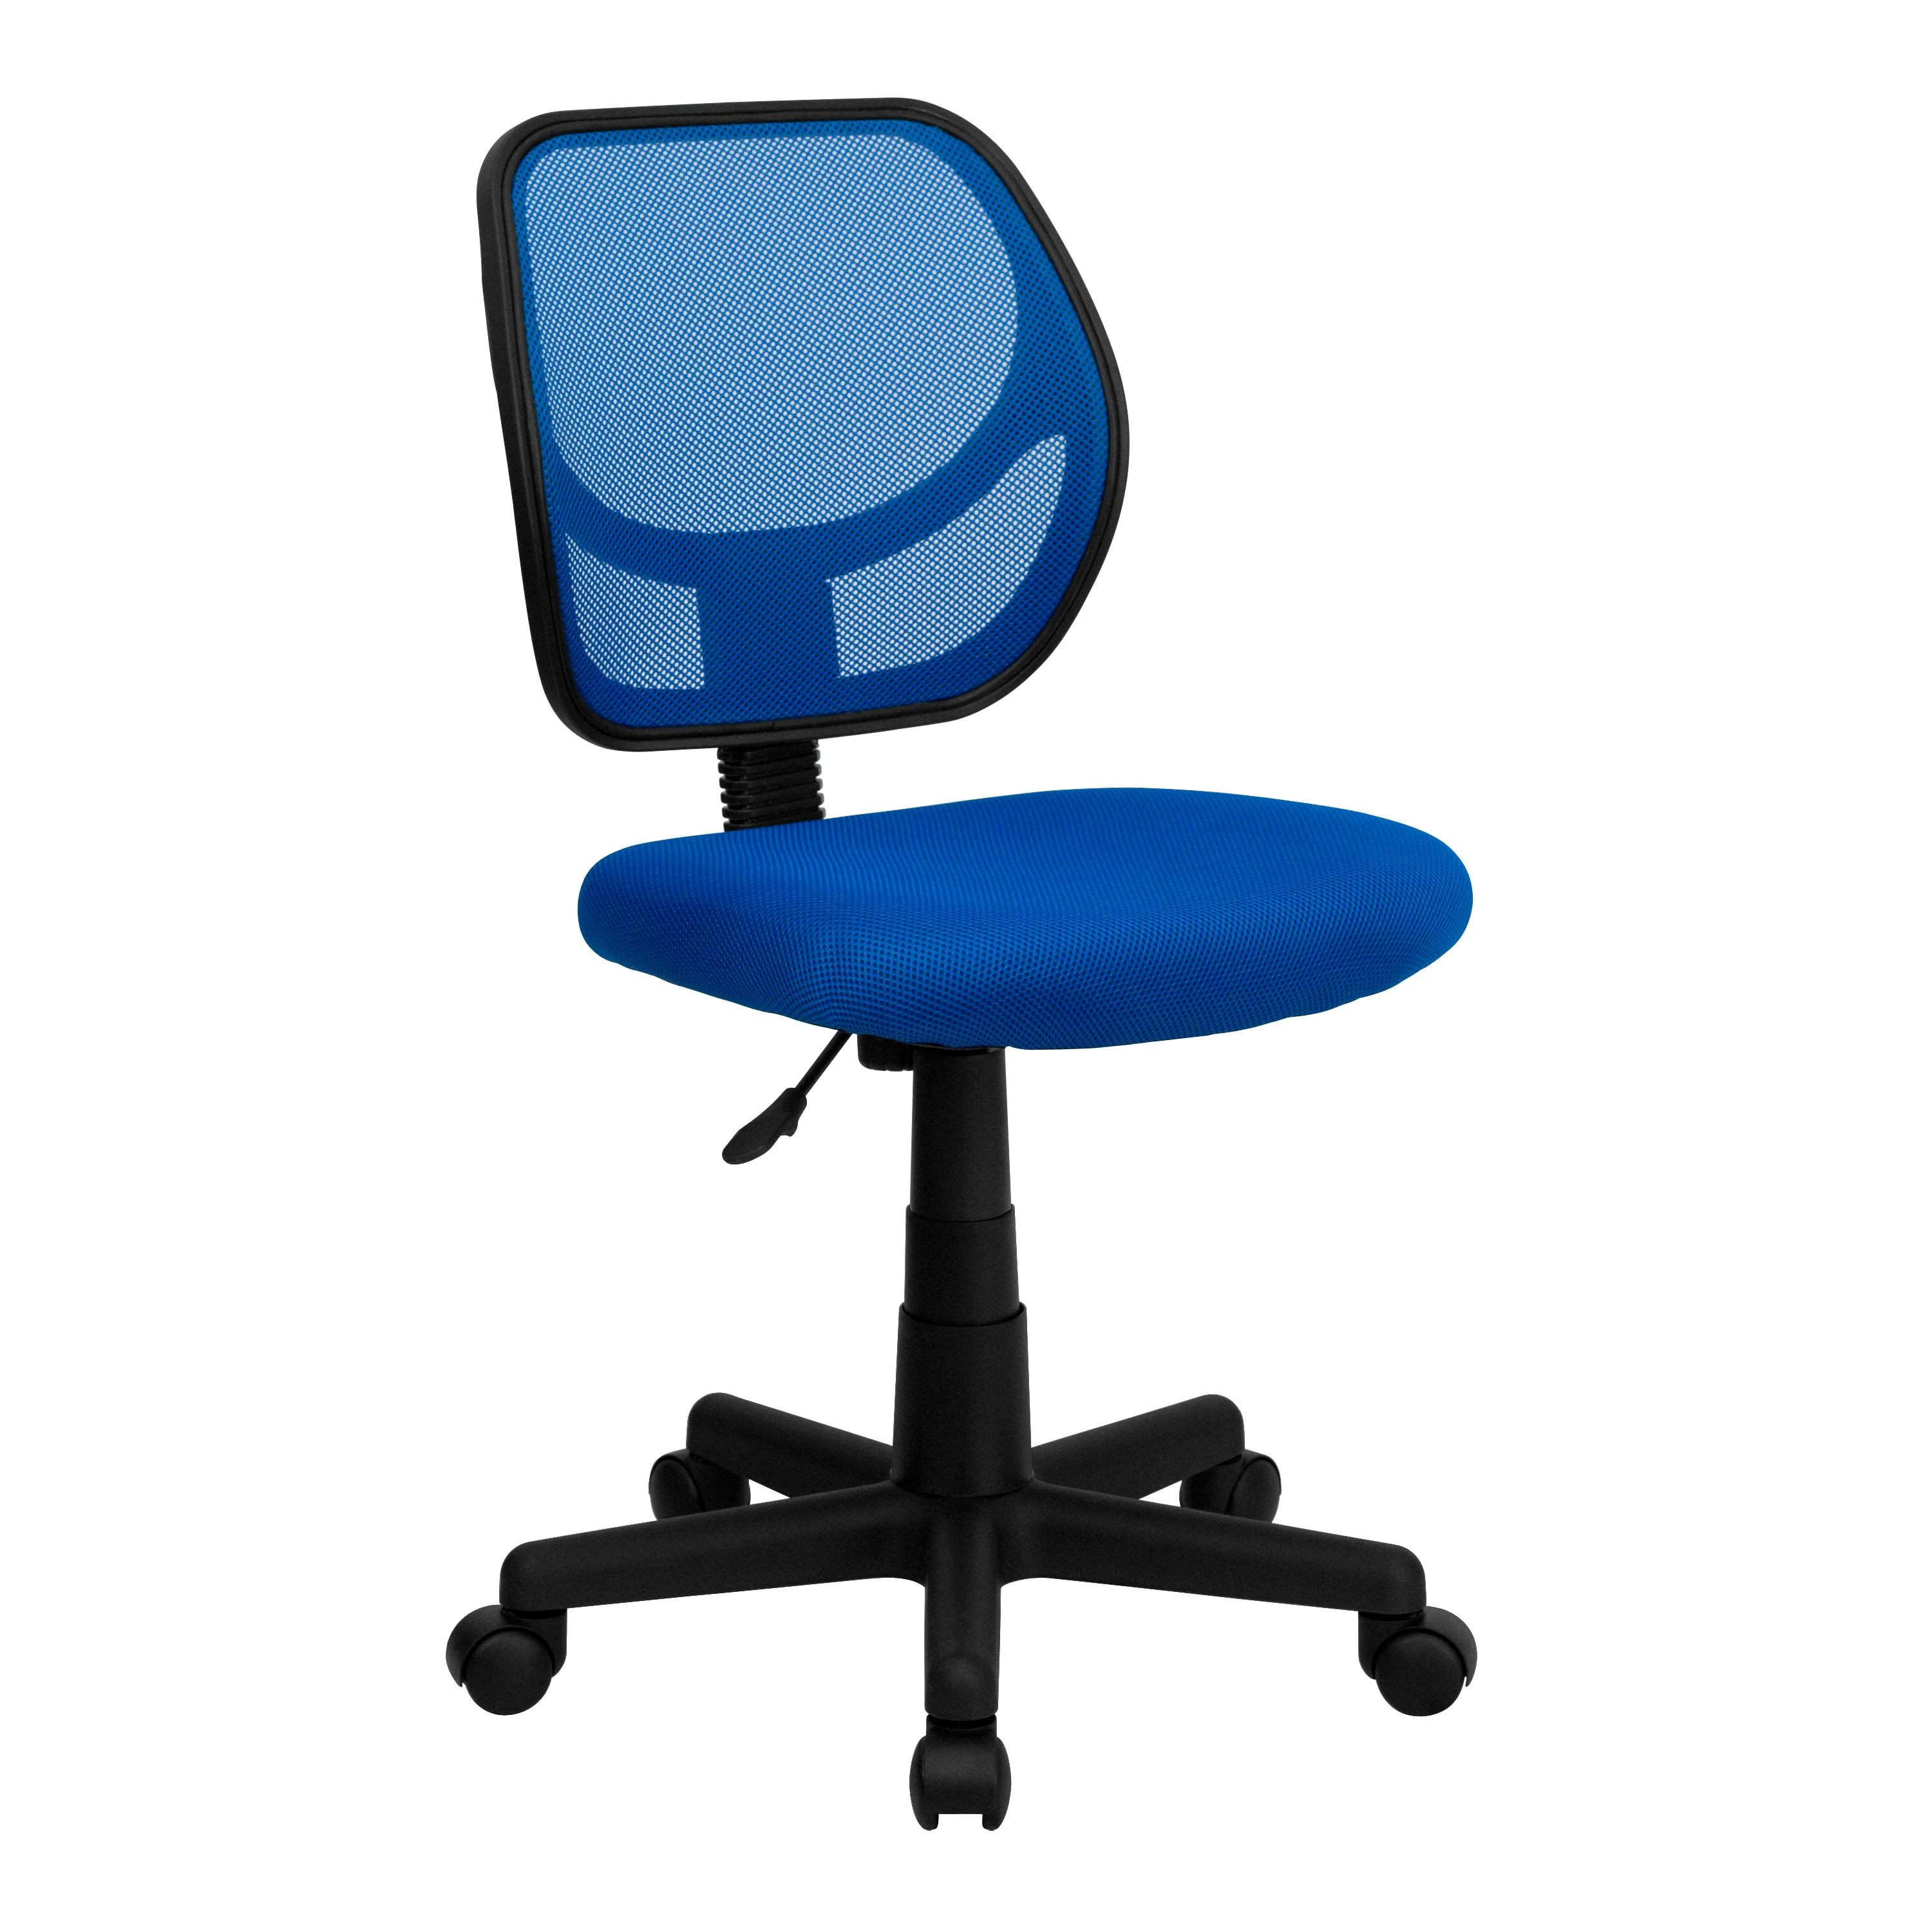 Flash Furniture WA 3074 BL GG Blue Mesh Computer Chair